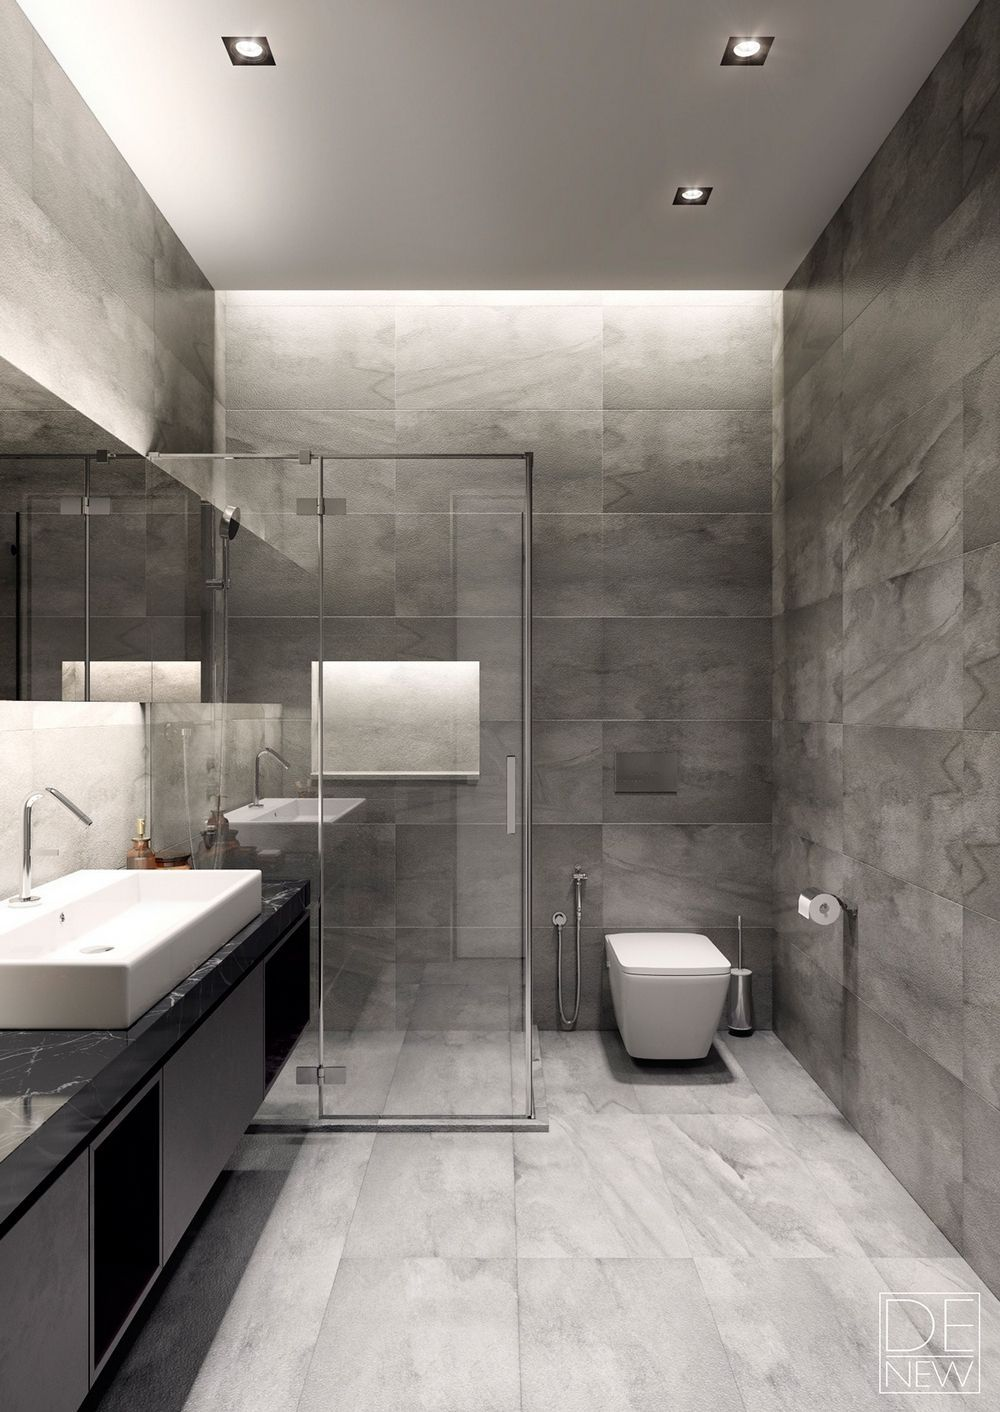 bathroom decorators near me in 2020 | Bathroom interior ...